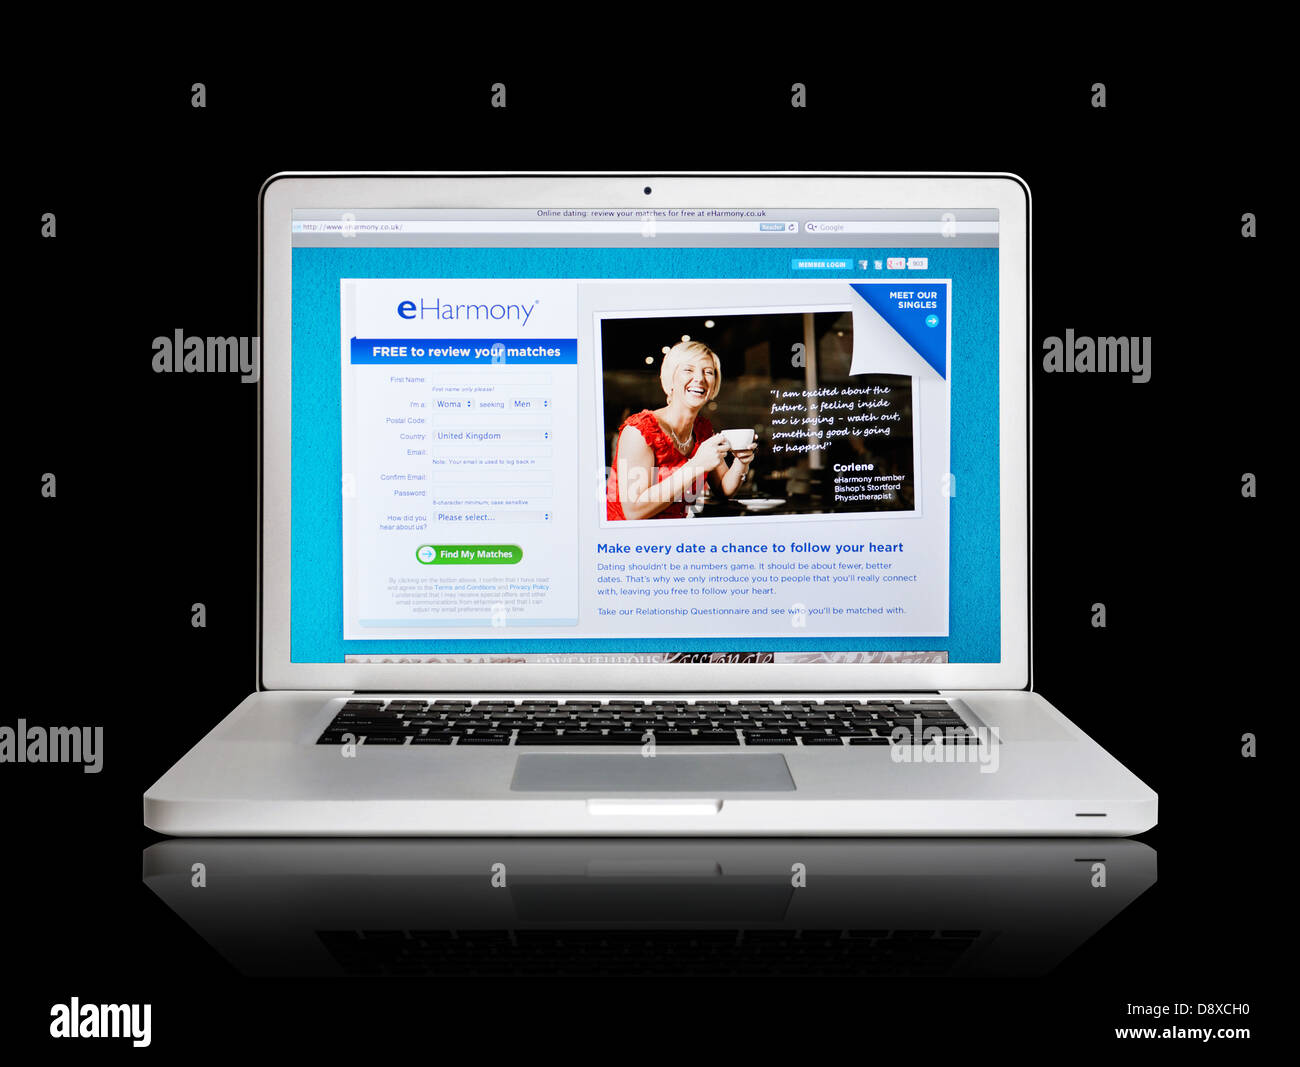 good screen name for a dating site free download match making software